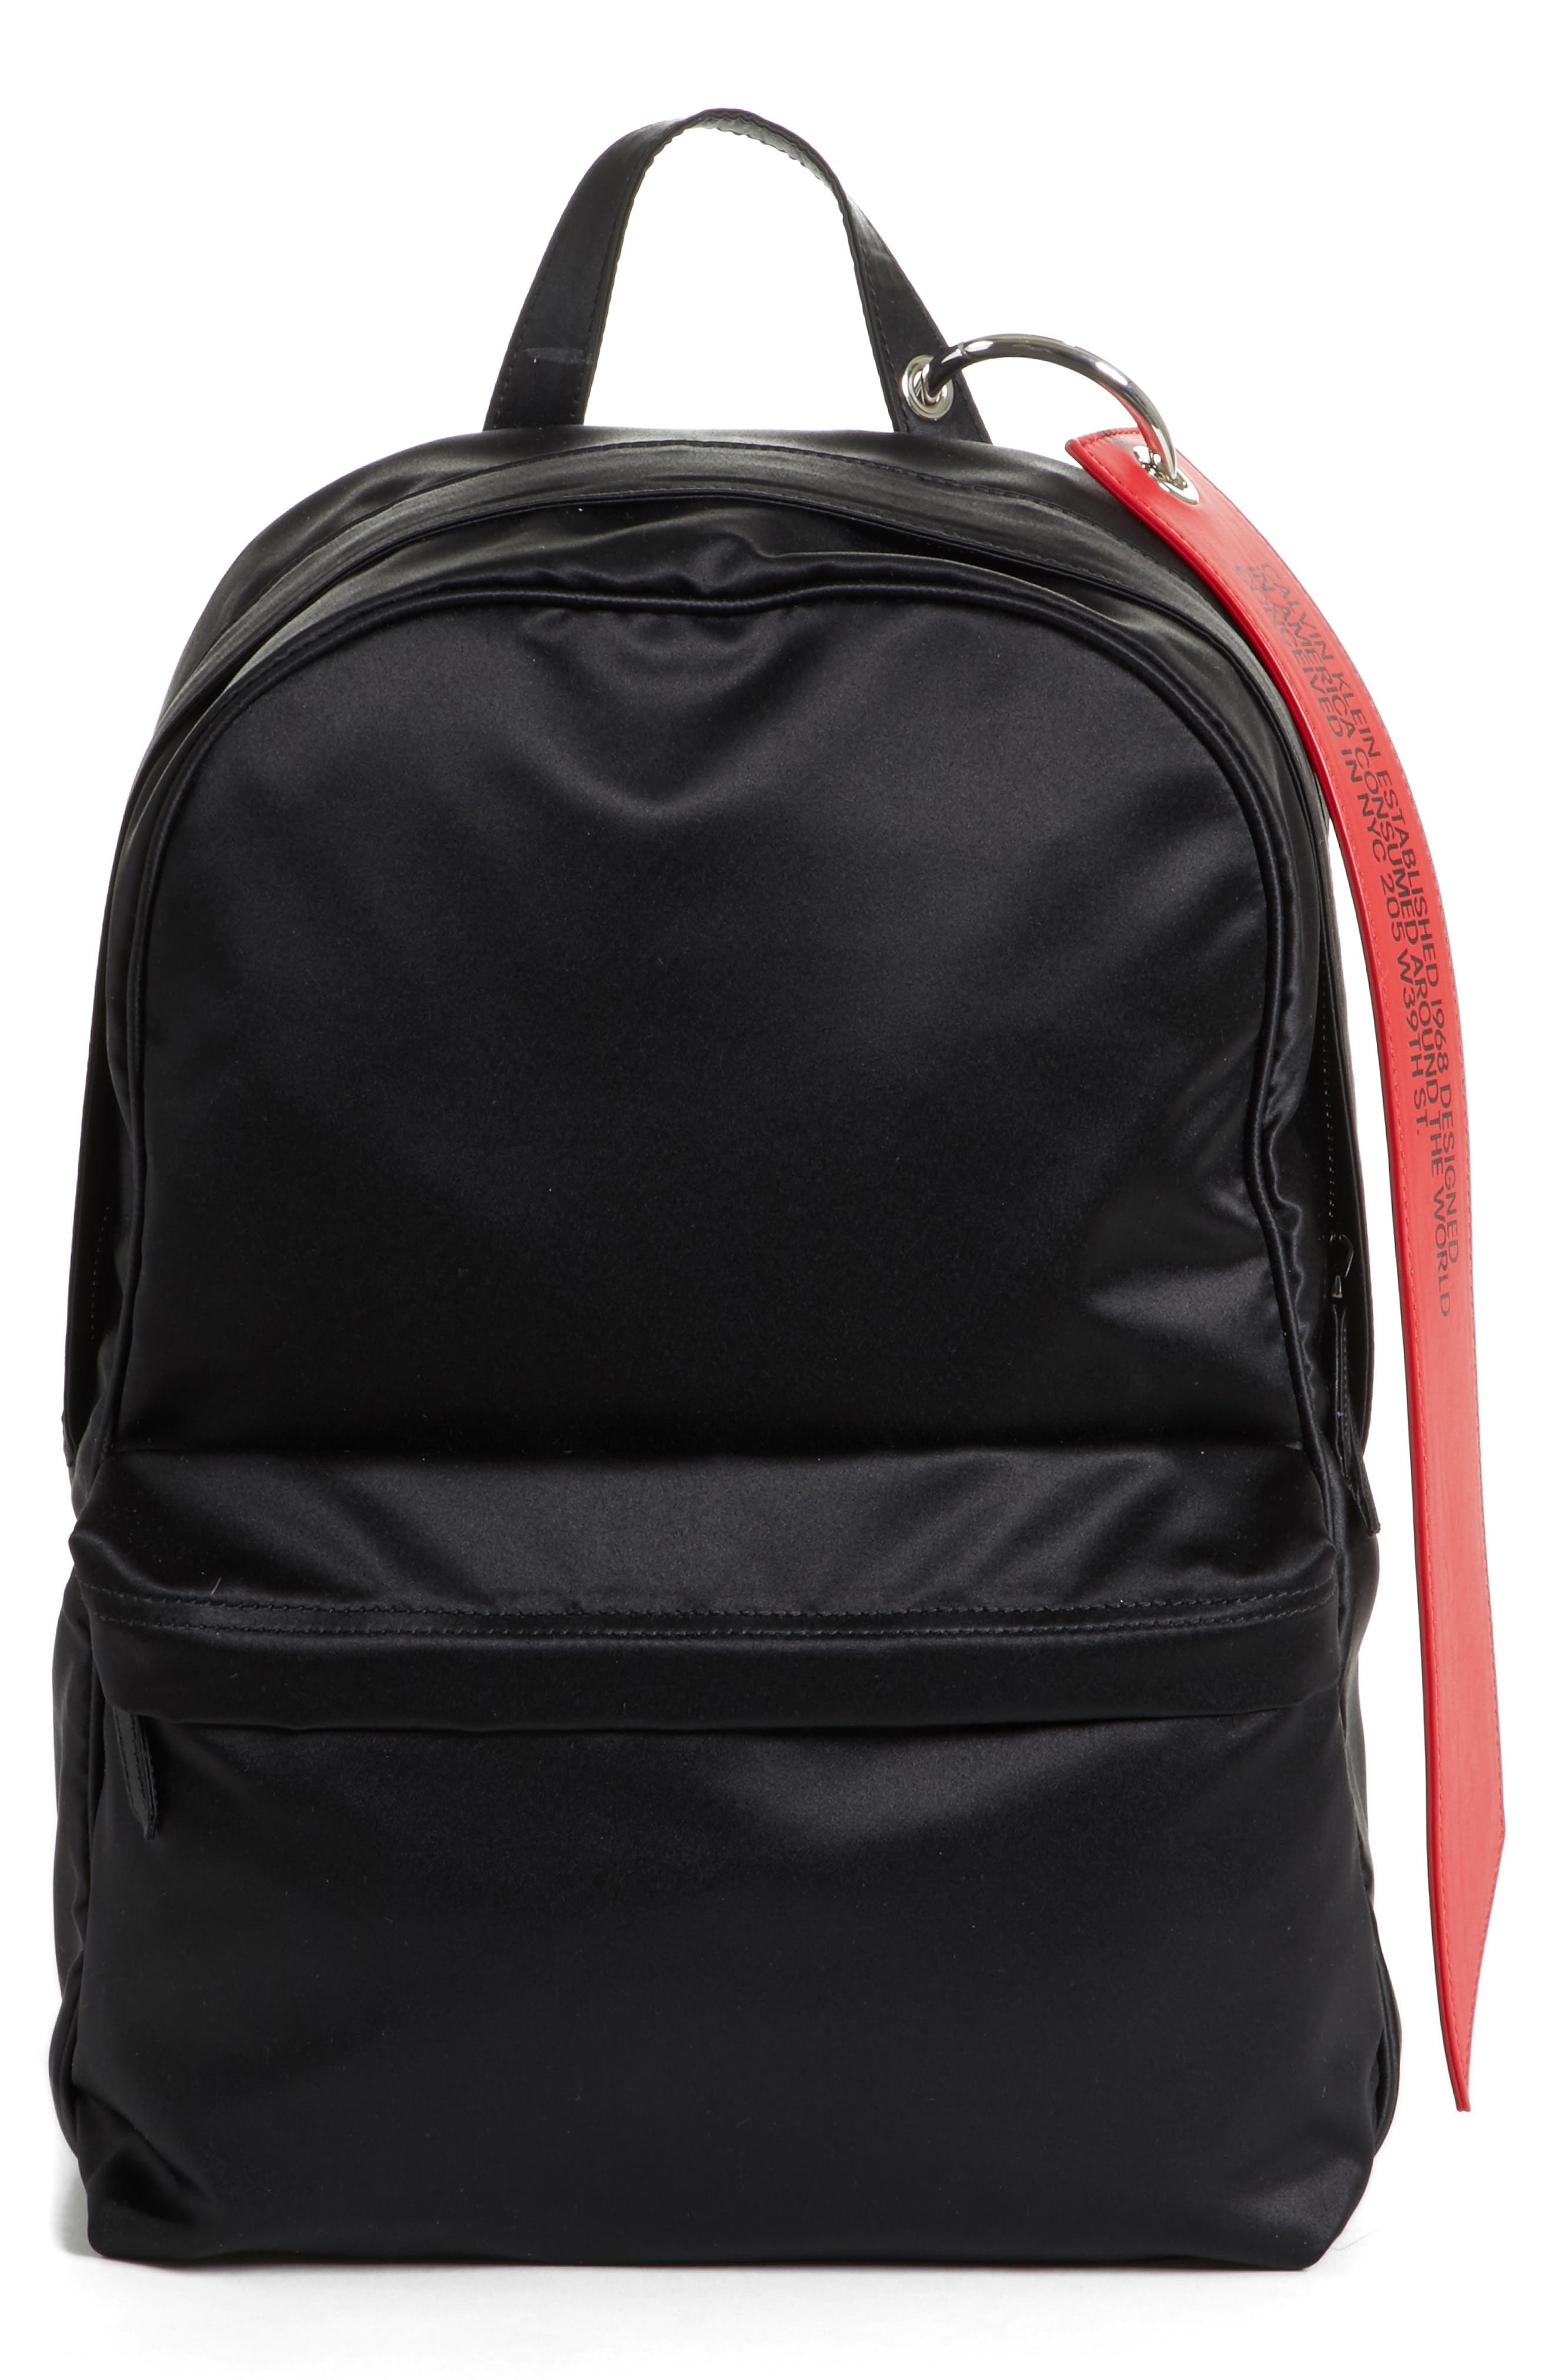 x Andy Warhol Foundation Nylon Backpack,                         Main,                         color, Black/ Red/ Black